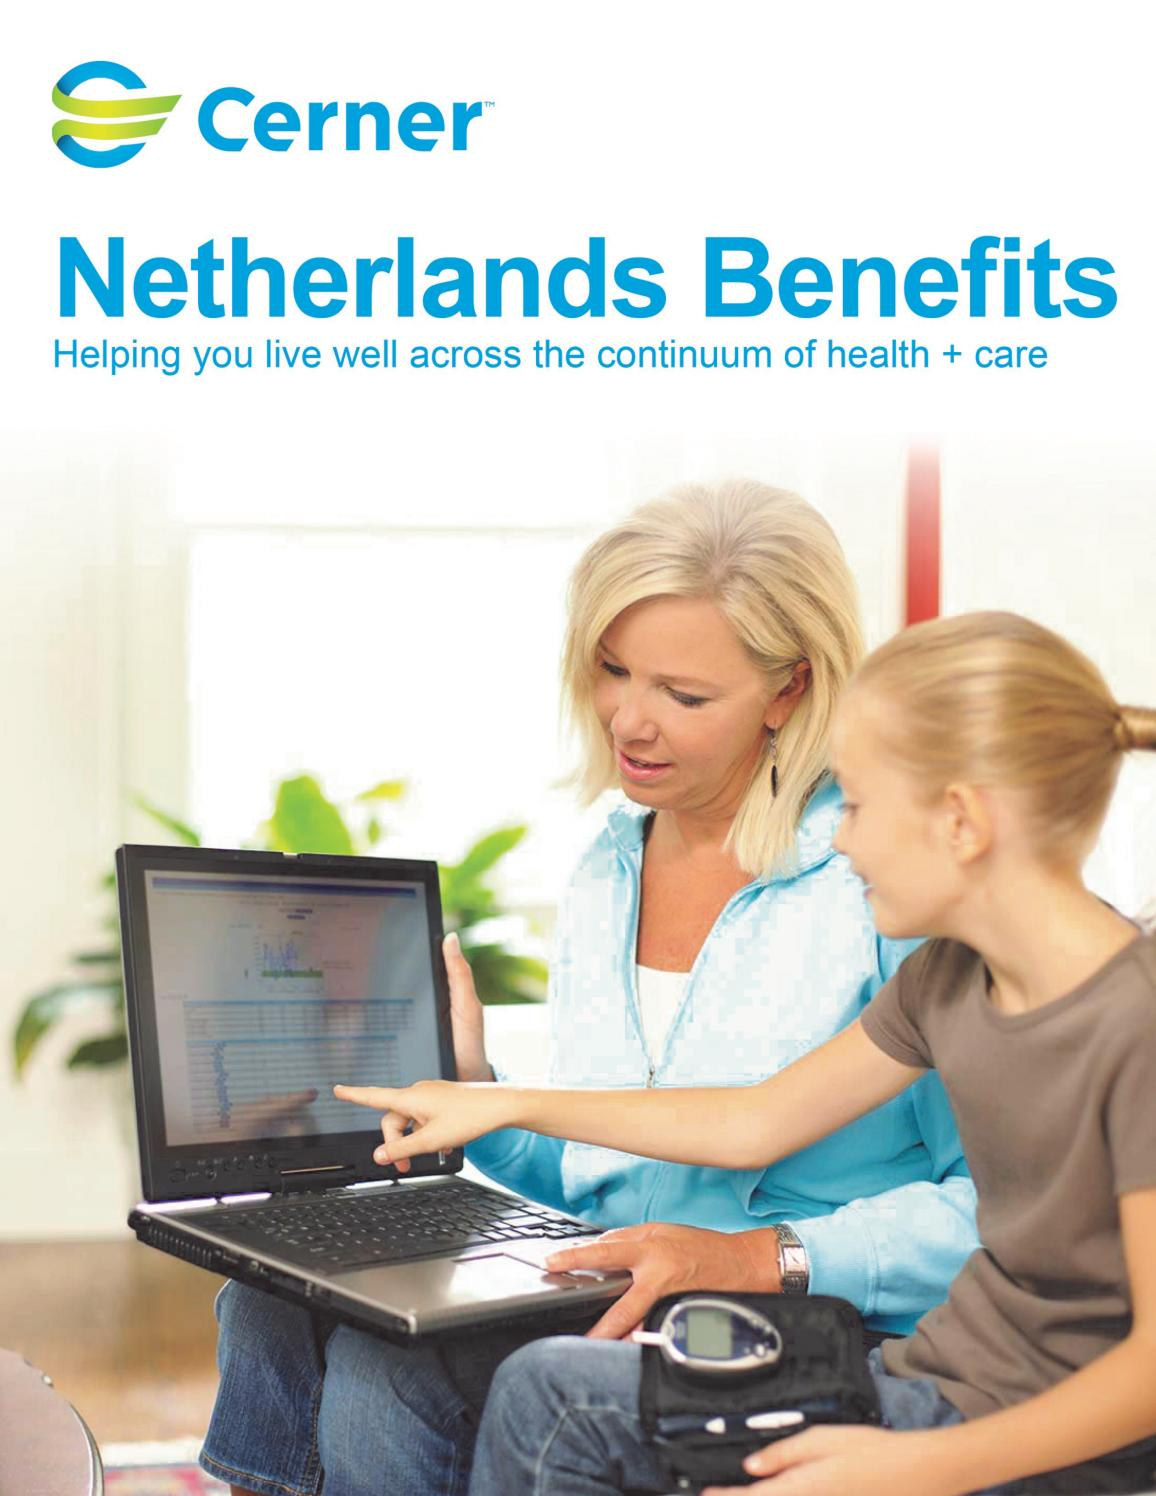 Aaa Insurance Careers: Cerner Netherlands Benefits Brochure By CernerCorporation